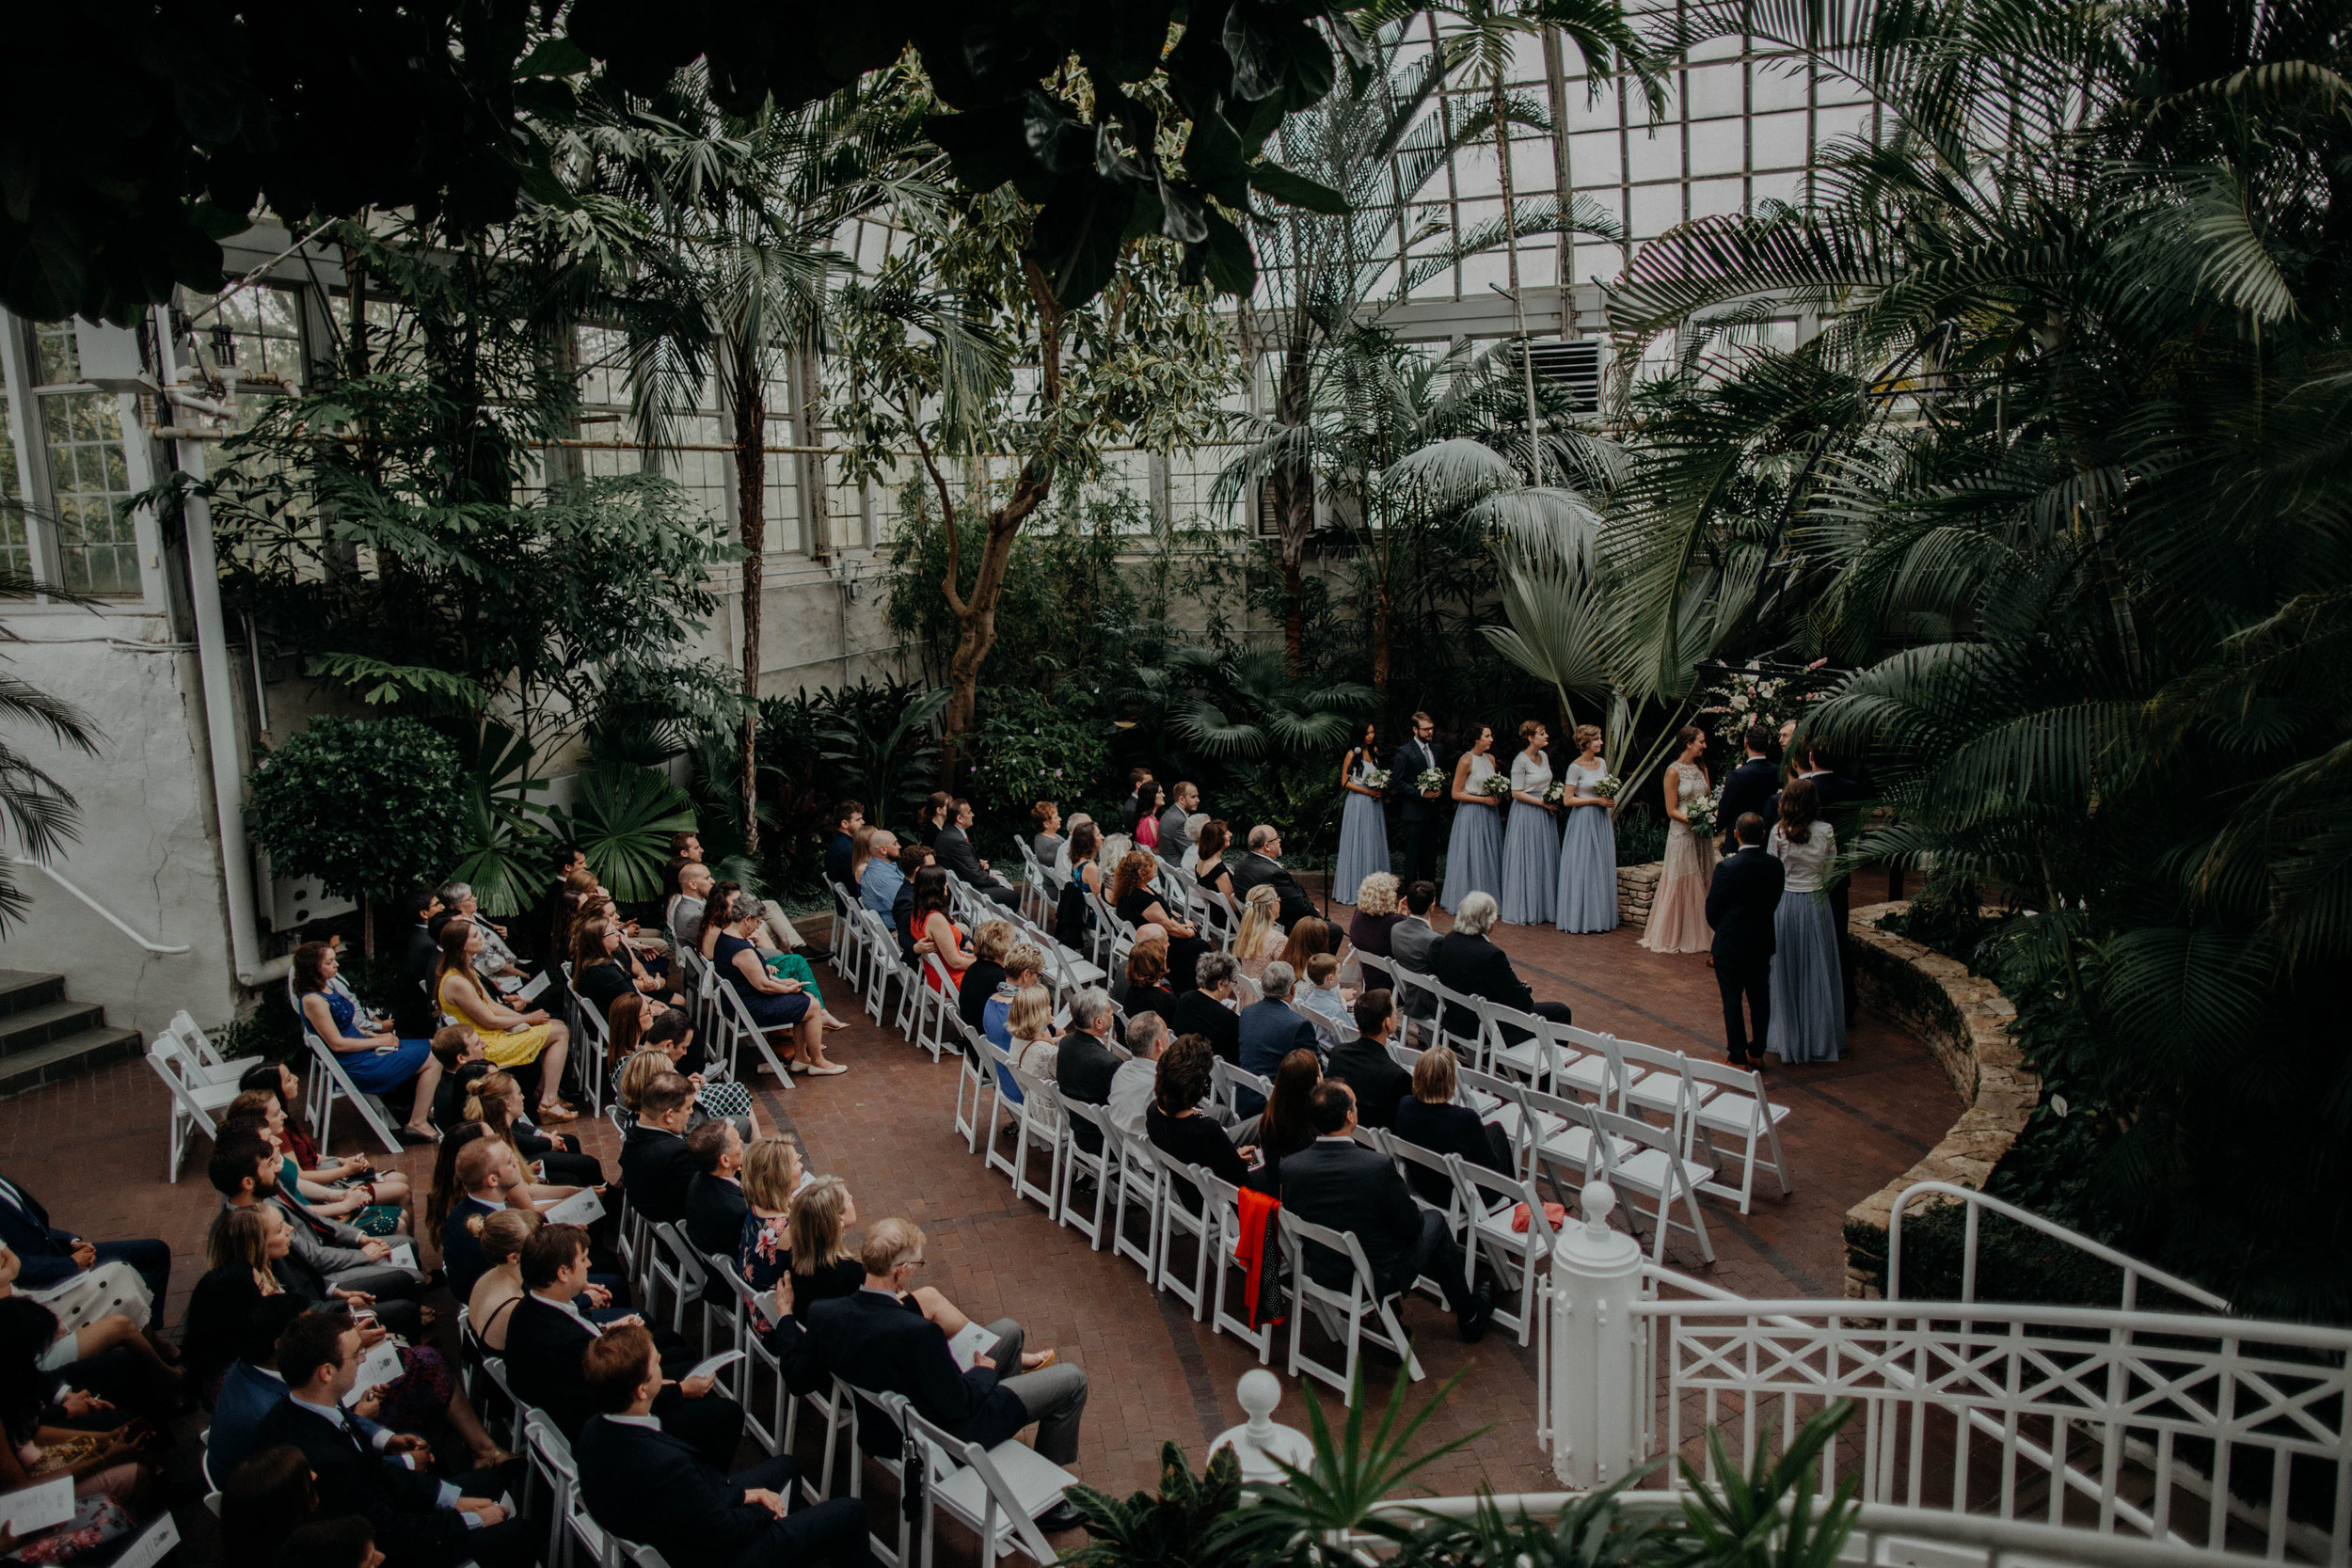 franklin park conservatory wedding columbus ohio wedding photographer grace e jones photography223.jpg